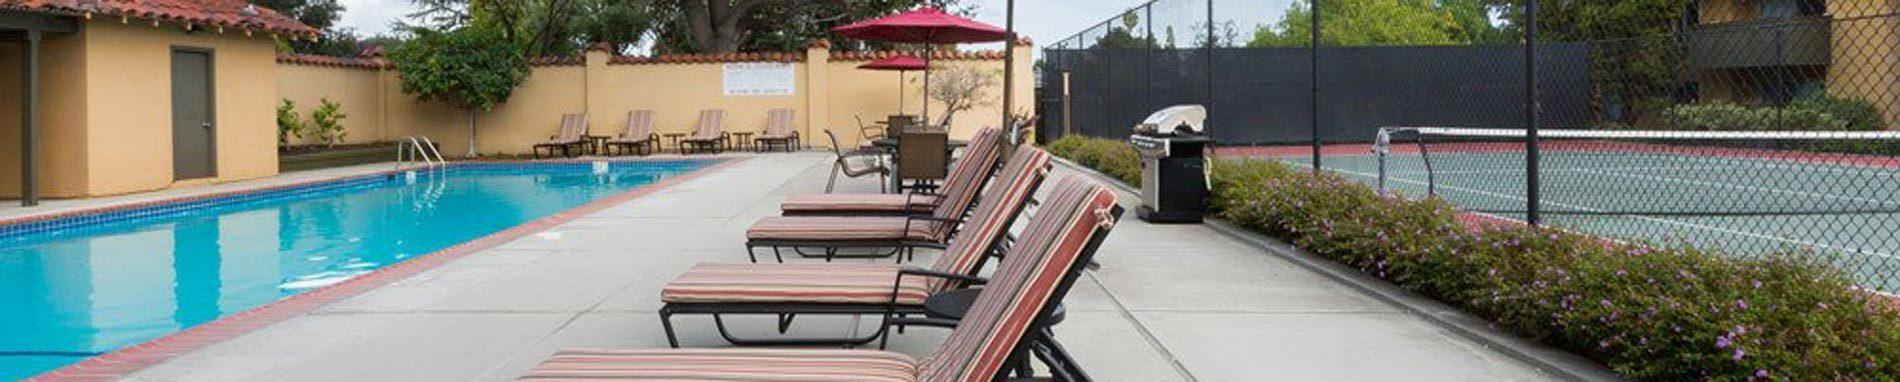 Reviews of our Sunnyvale apartments